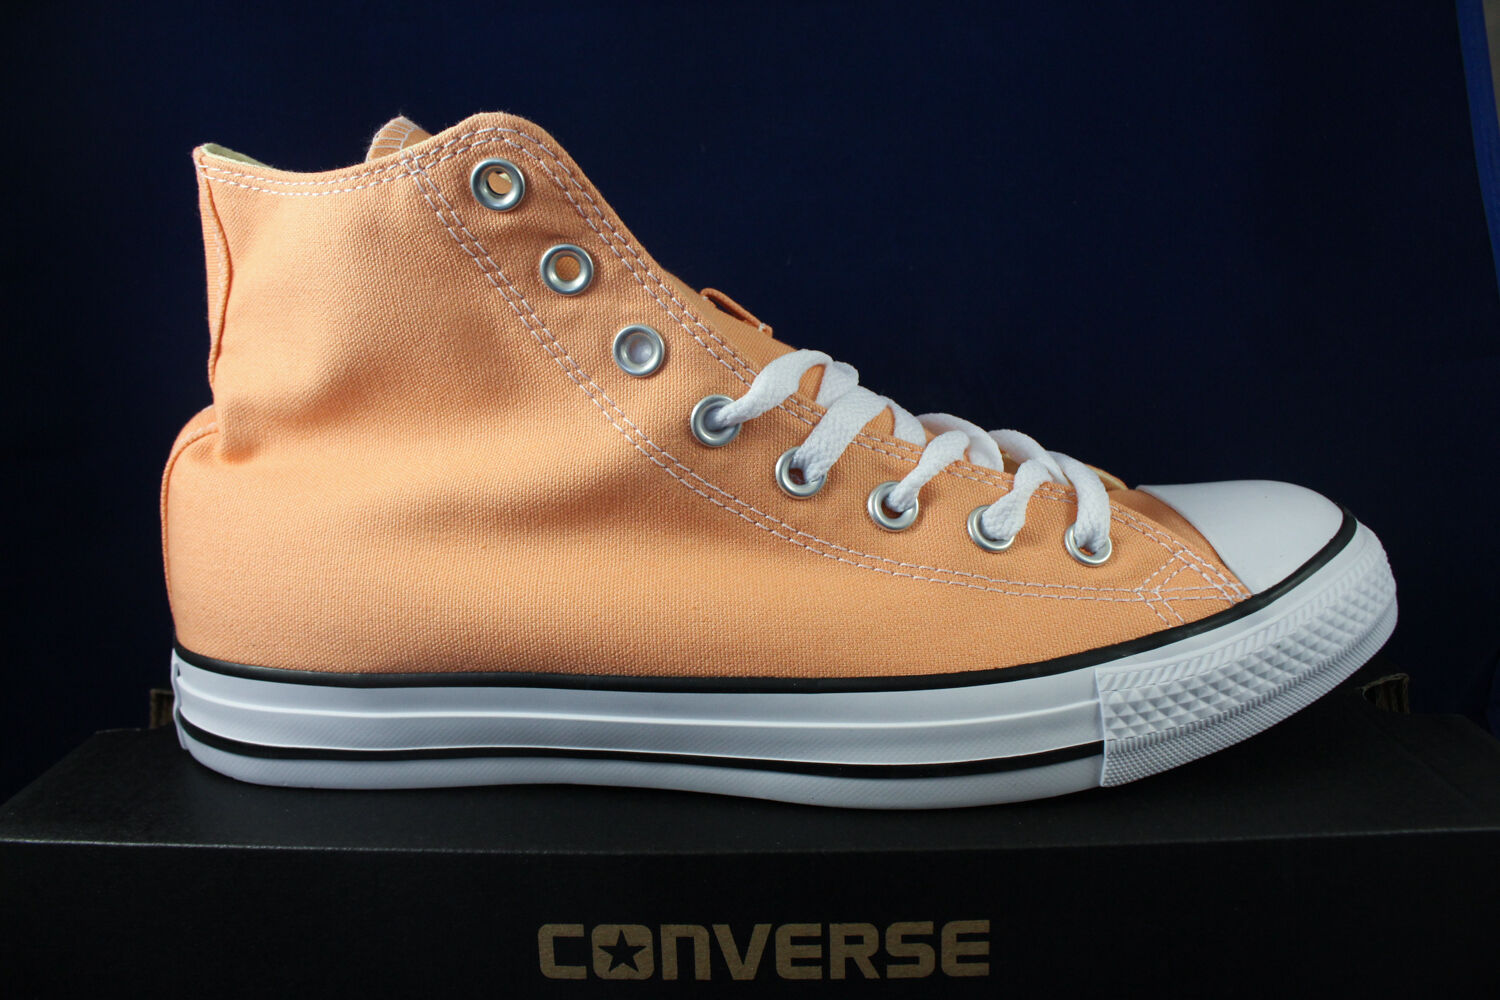 1dc05485ade1 CONVERSE CHUCK TAYLOR ALL STAR CT AS AS AS HI SUNSET GLOW 155567F SZ 7  bd69bf